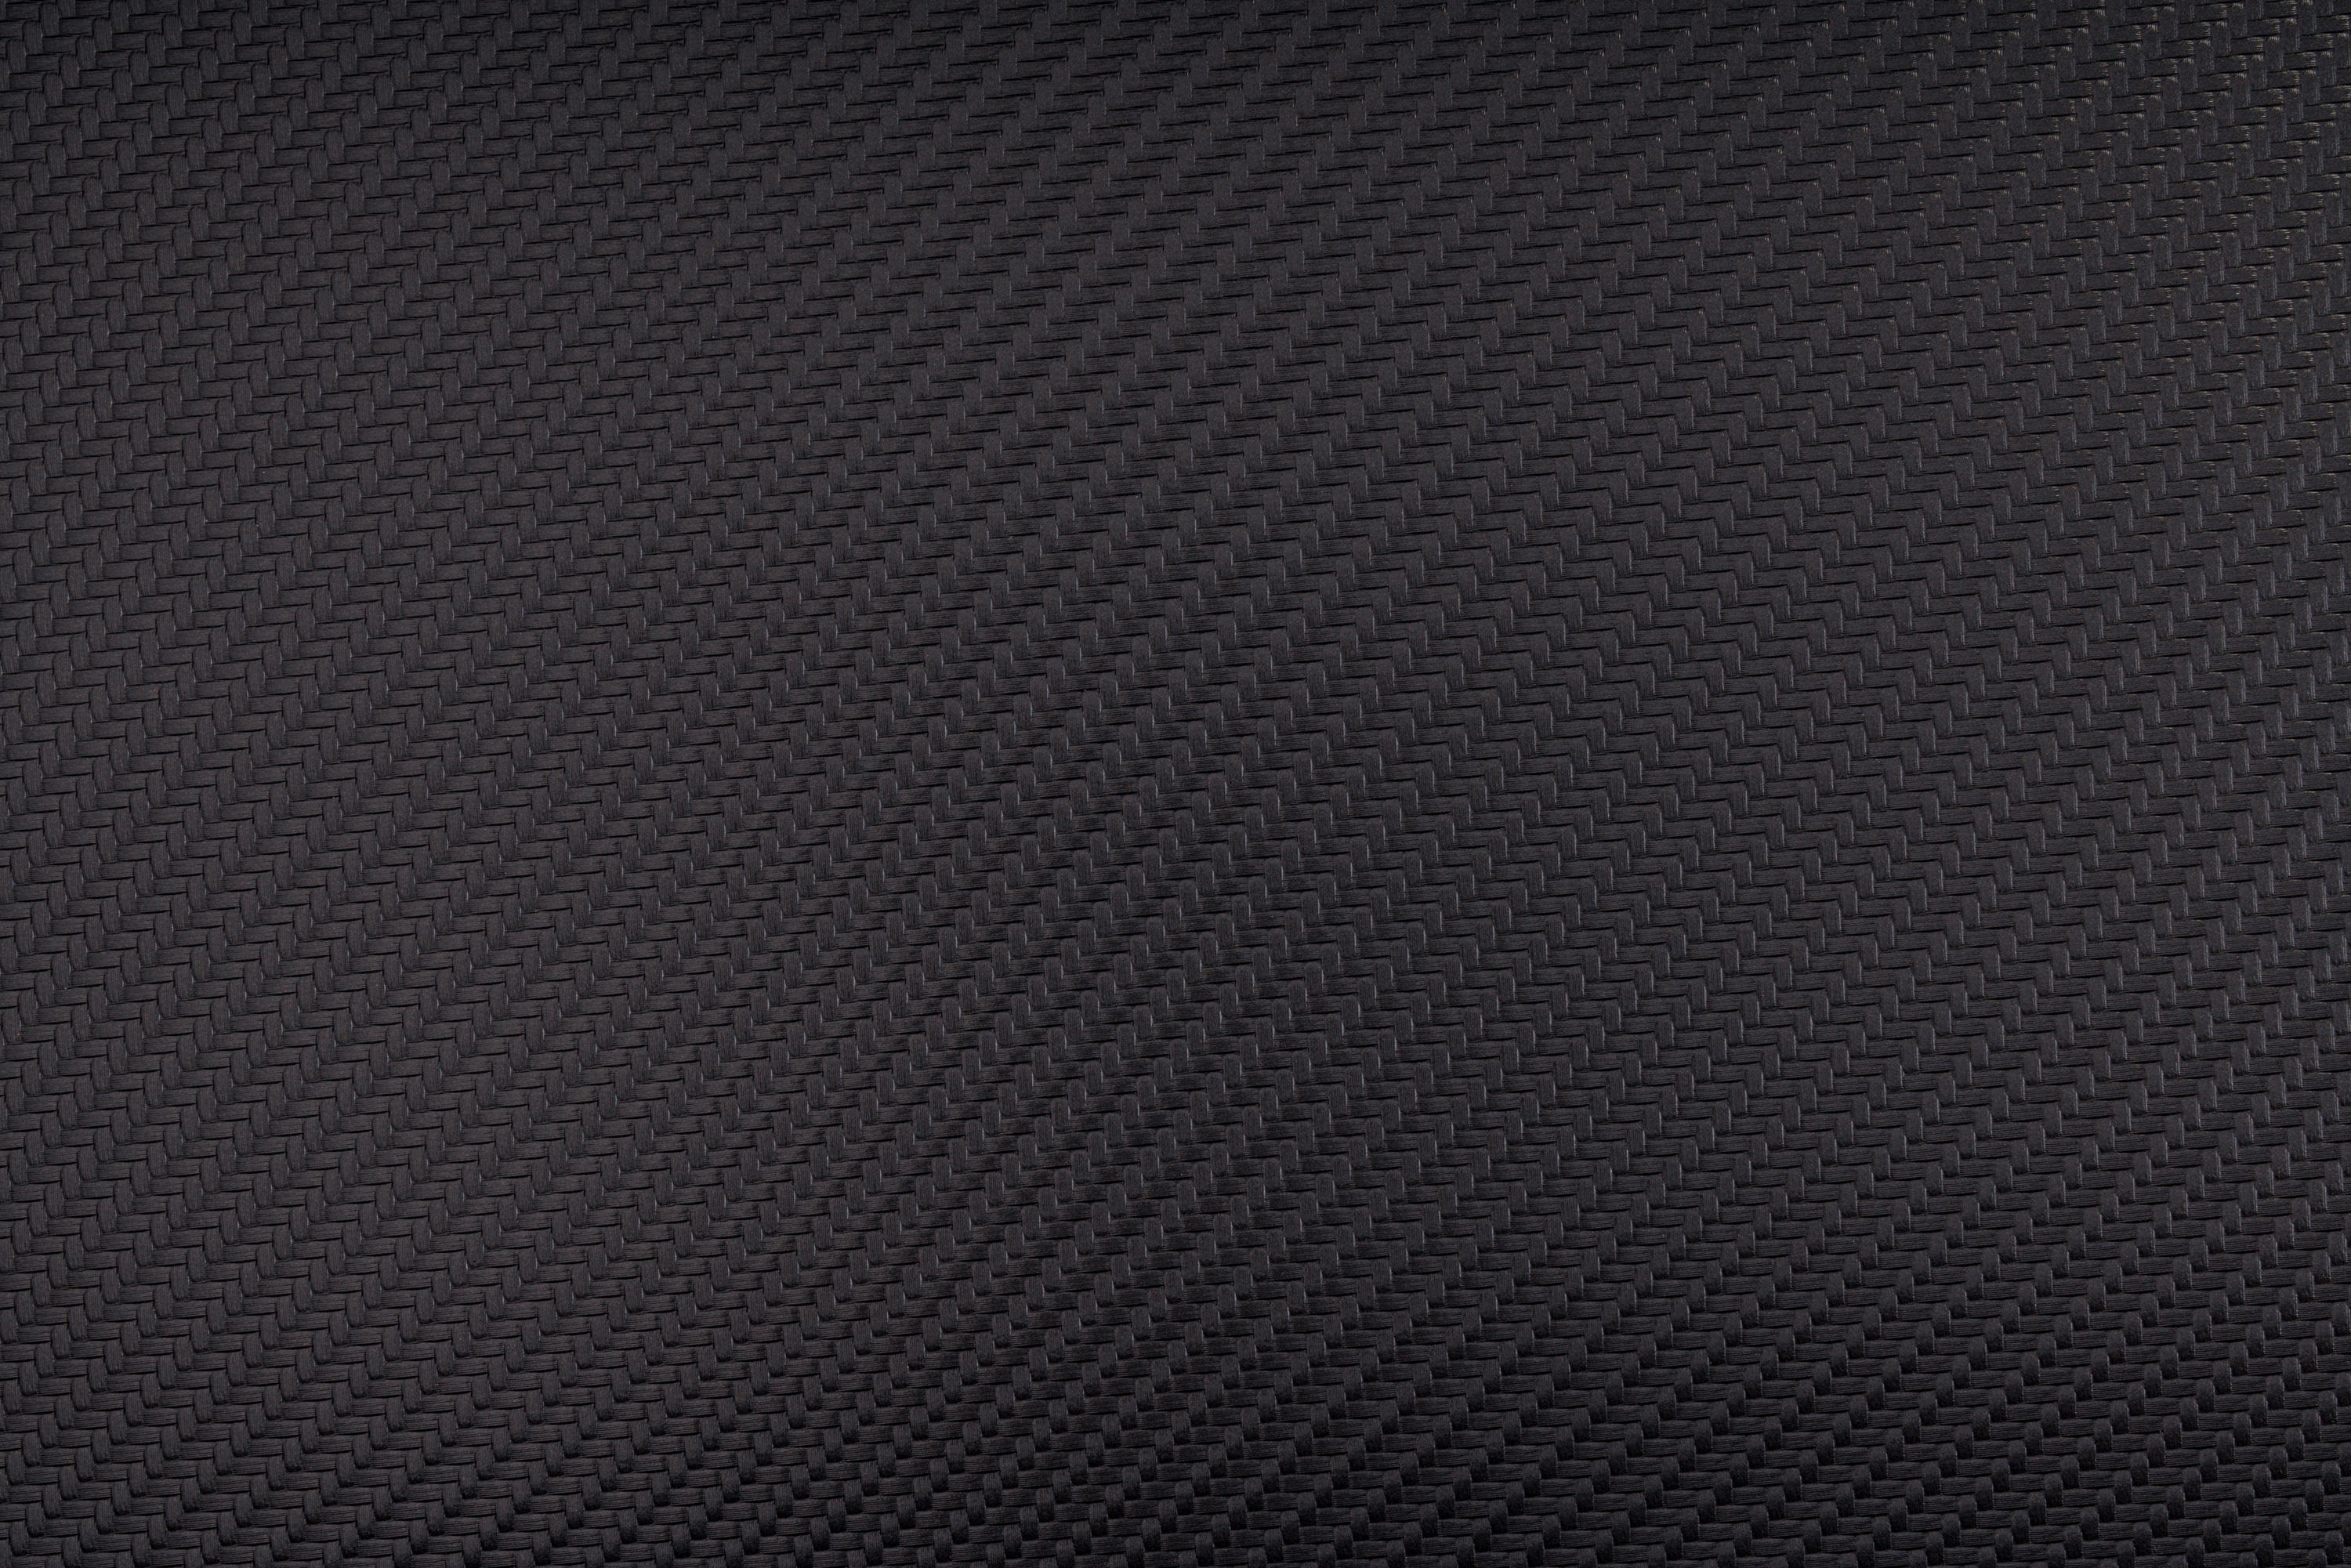 CARBON FIBER ANTHRACITE - Drapery fabrics from SPRADLING | Architonic